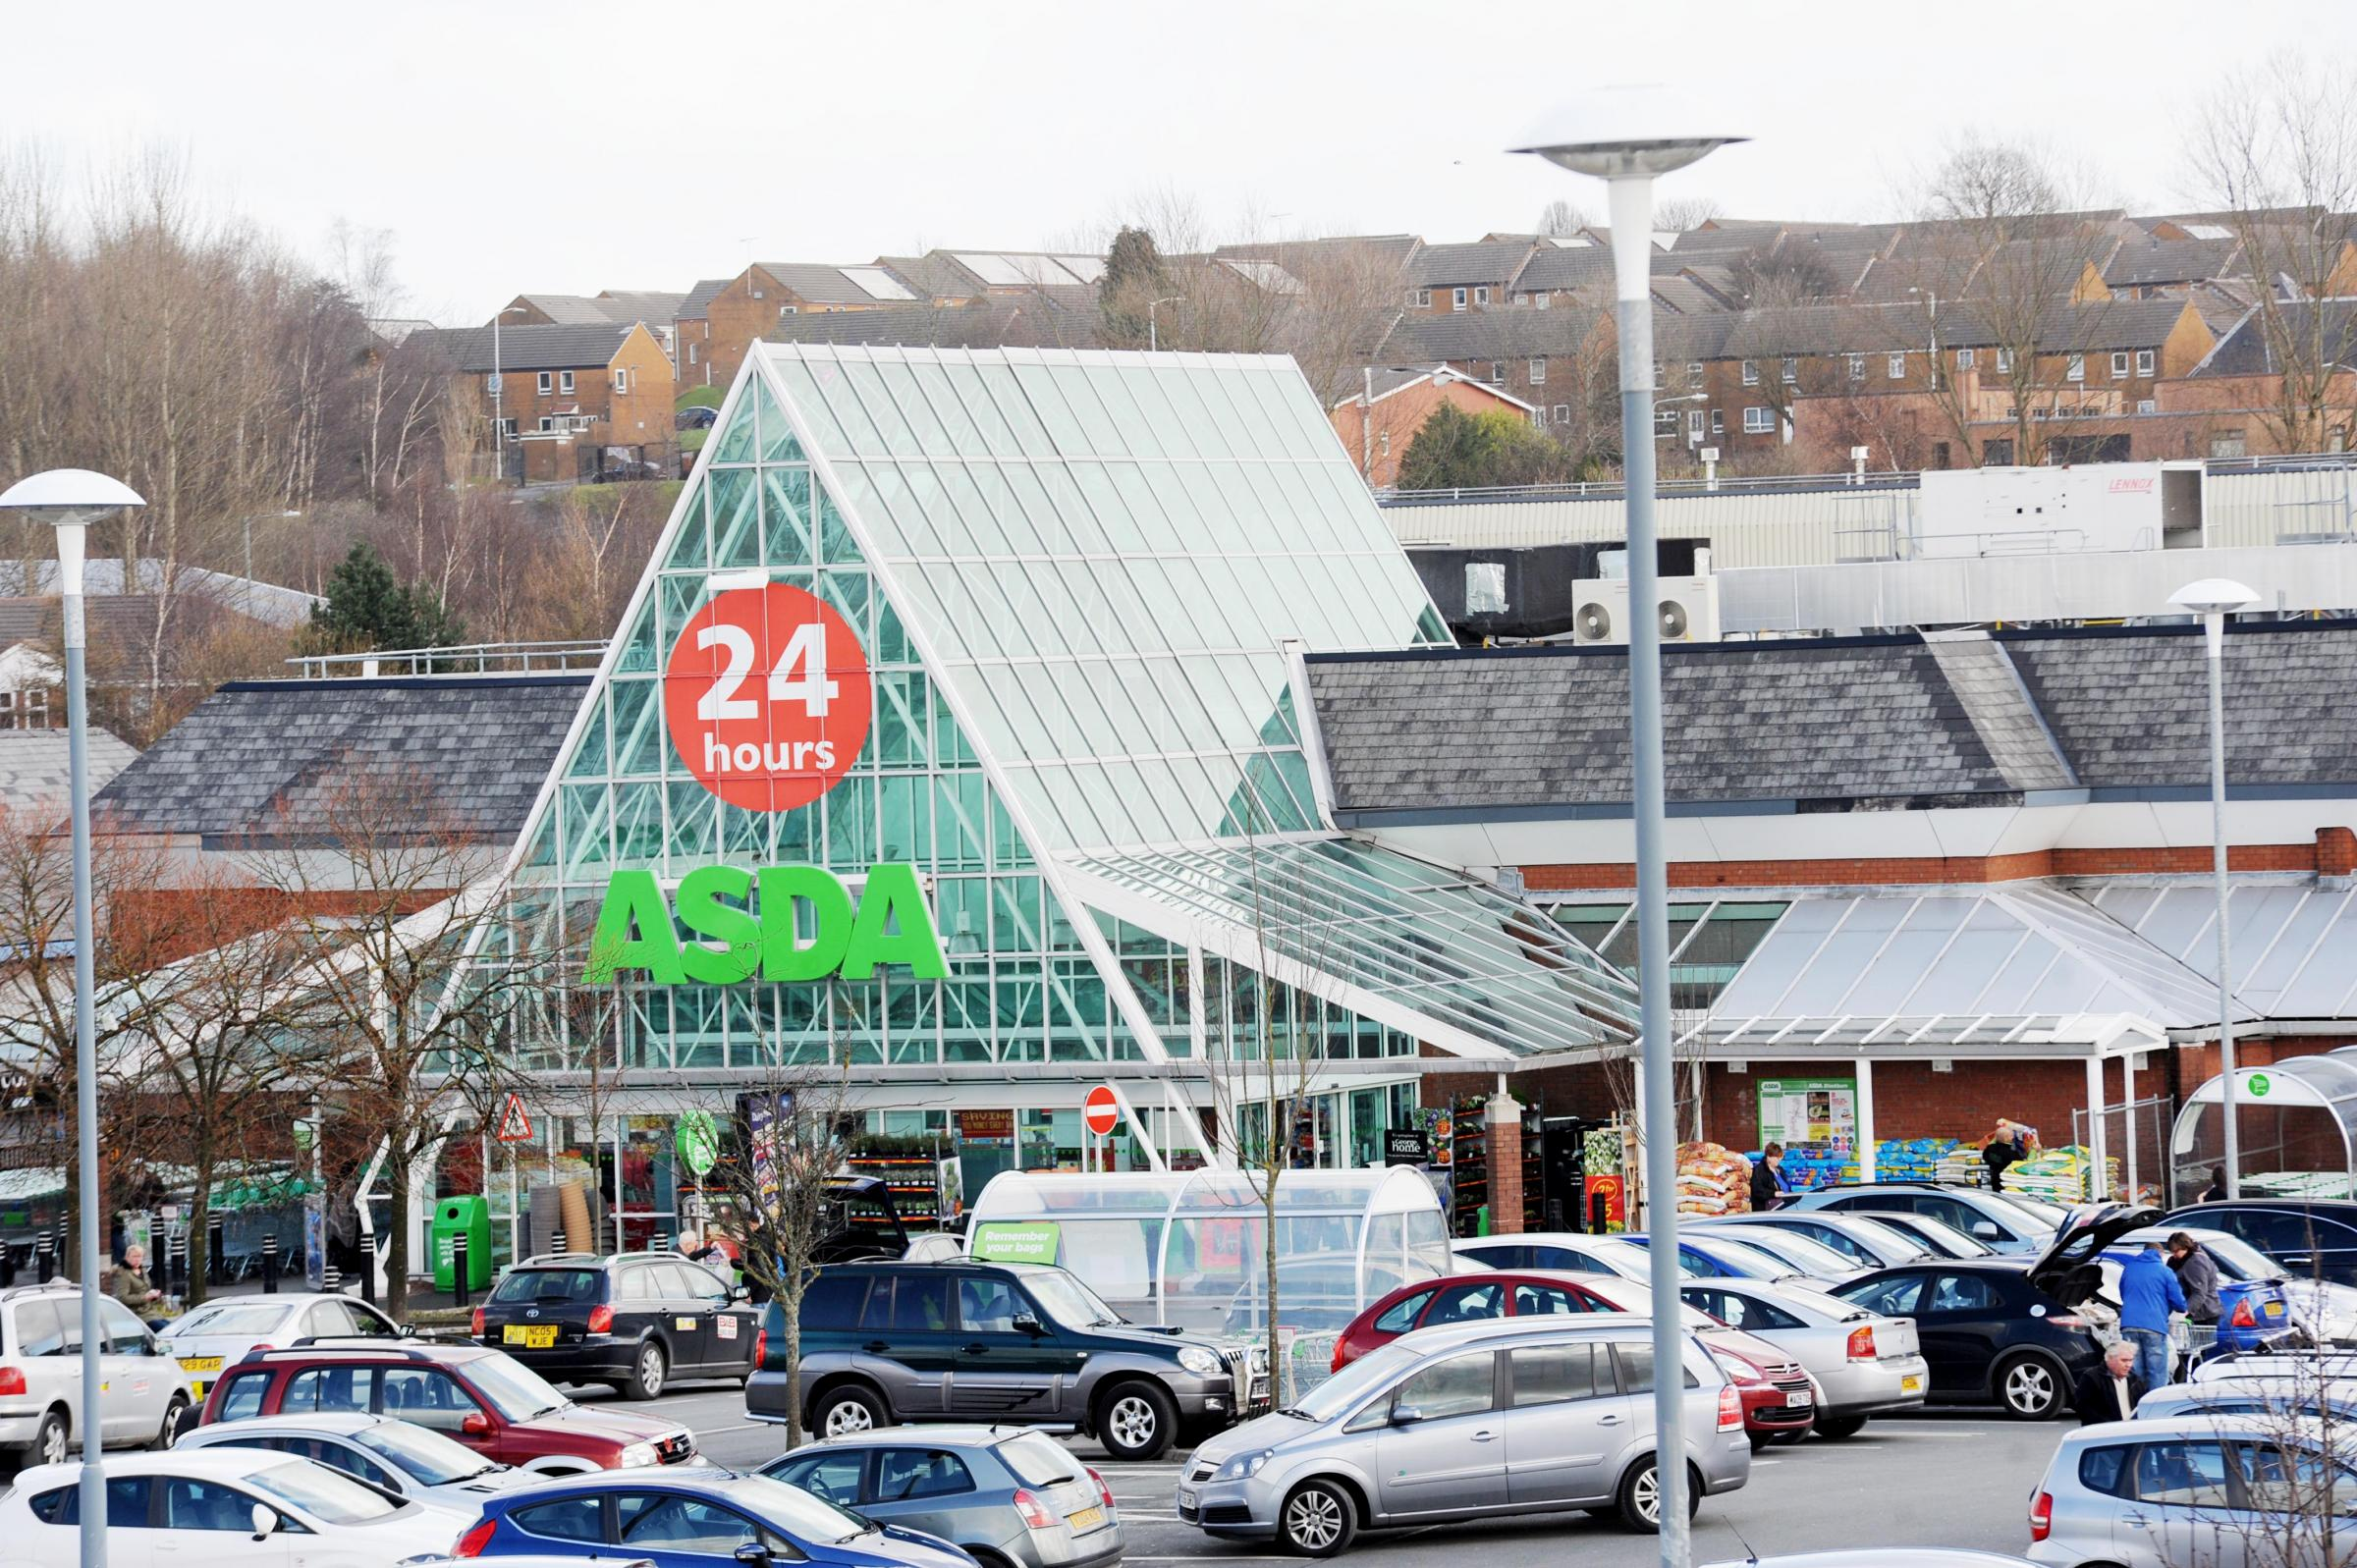 Burnei, 21, of Burnaby Road, Coventry, pleaded guilty to stealing alcohol from Asda